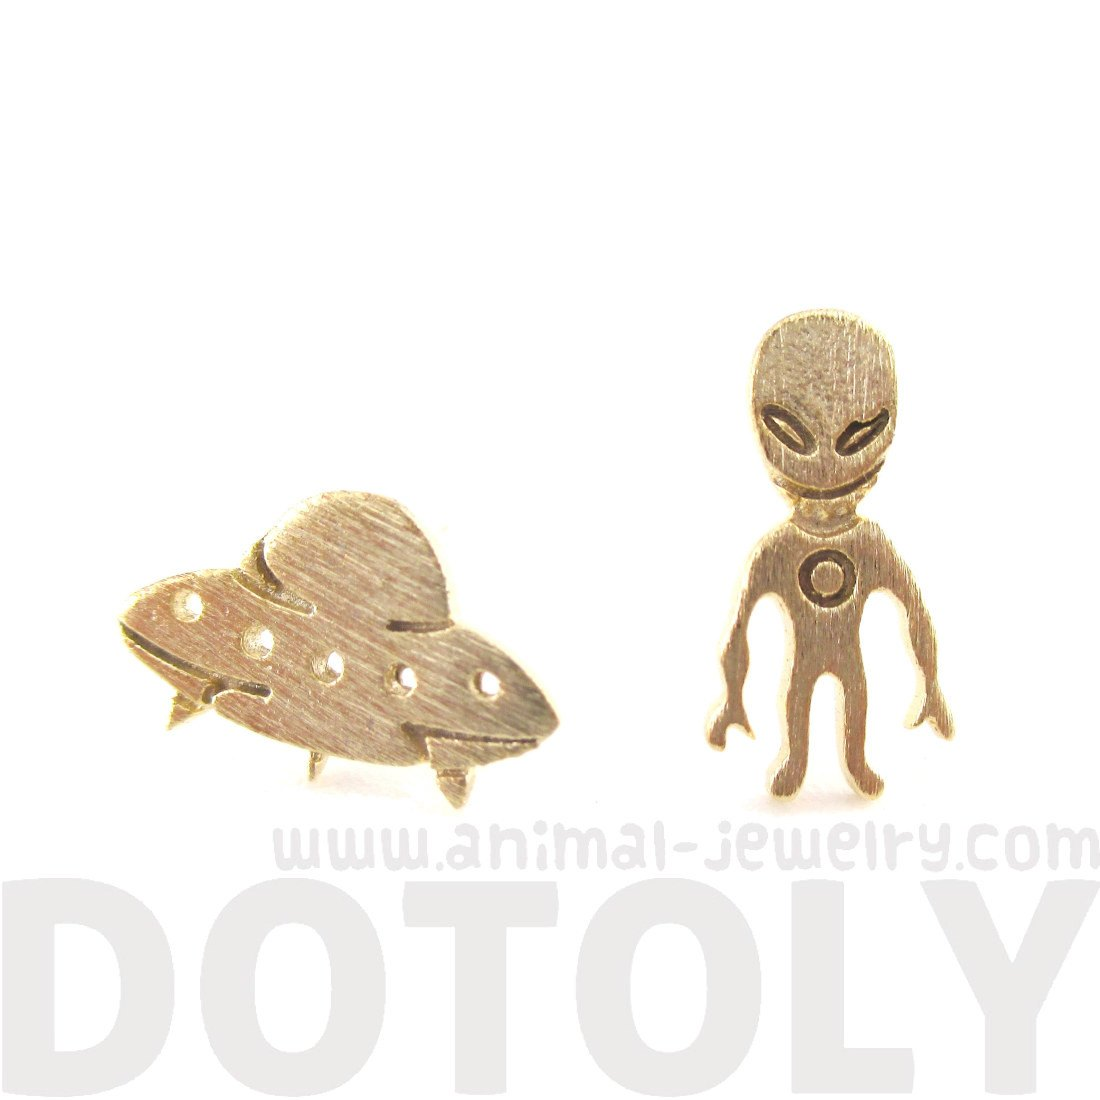 Alien and UFO Space Ship Shaped Stud Earrings in Gold